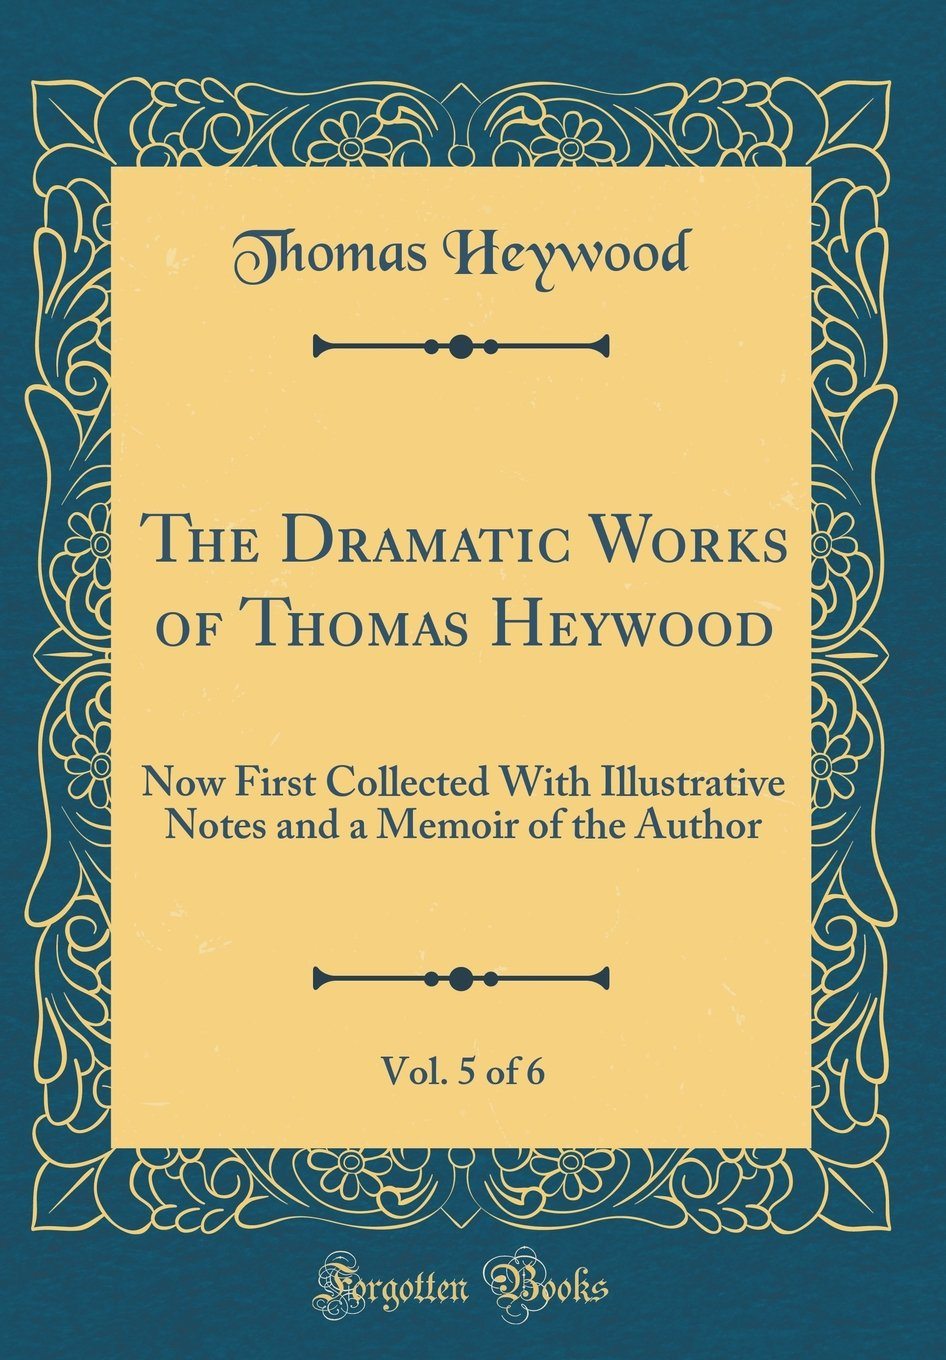 Download The Dramatic Works of Thomas Heywood, Vol. 5 of 6: Now First Collected With Illustrative Notes and a Memoir of the Author (Classic Reprint) ebook